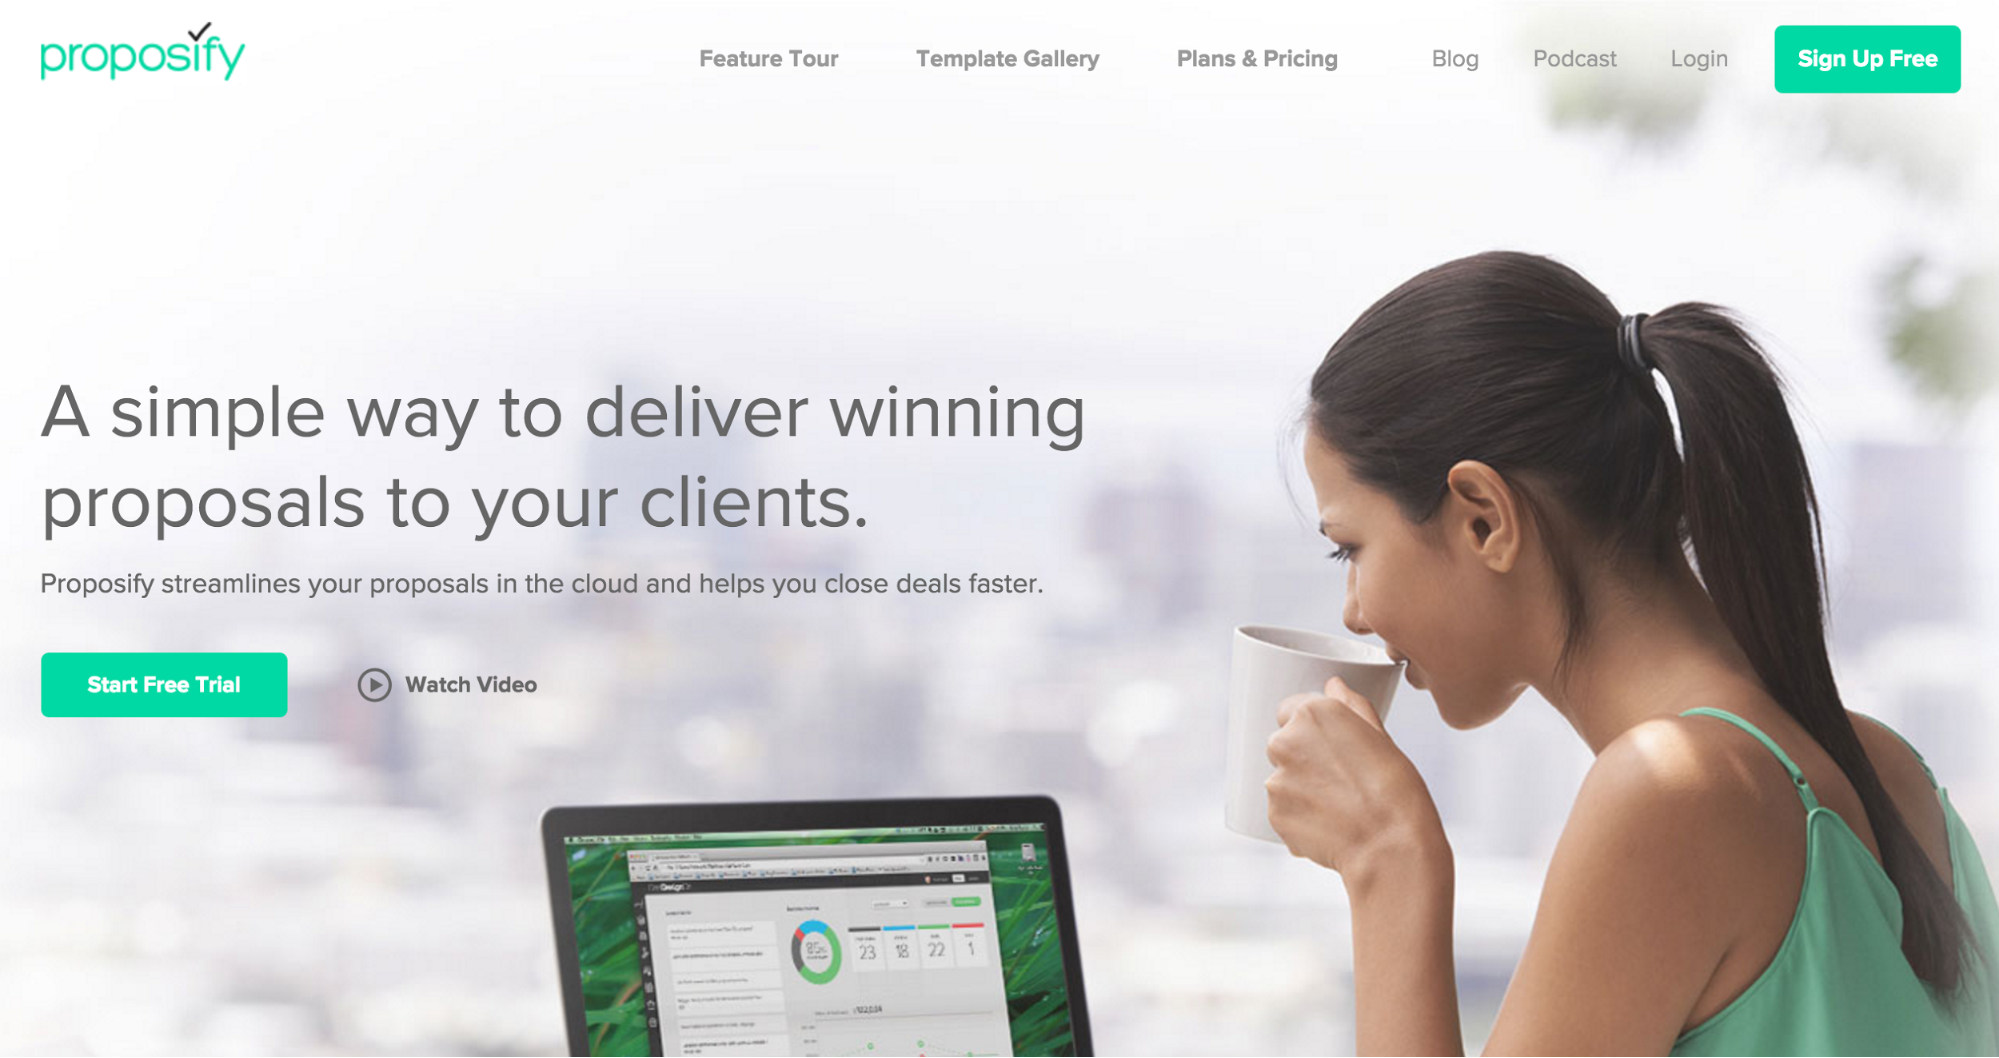 Proposify app homepage